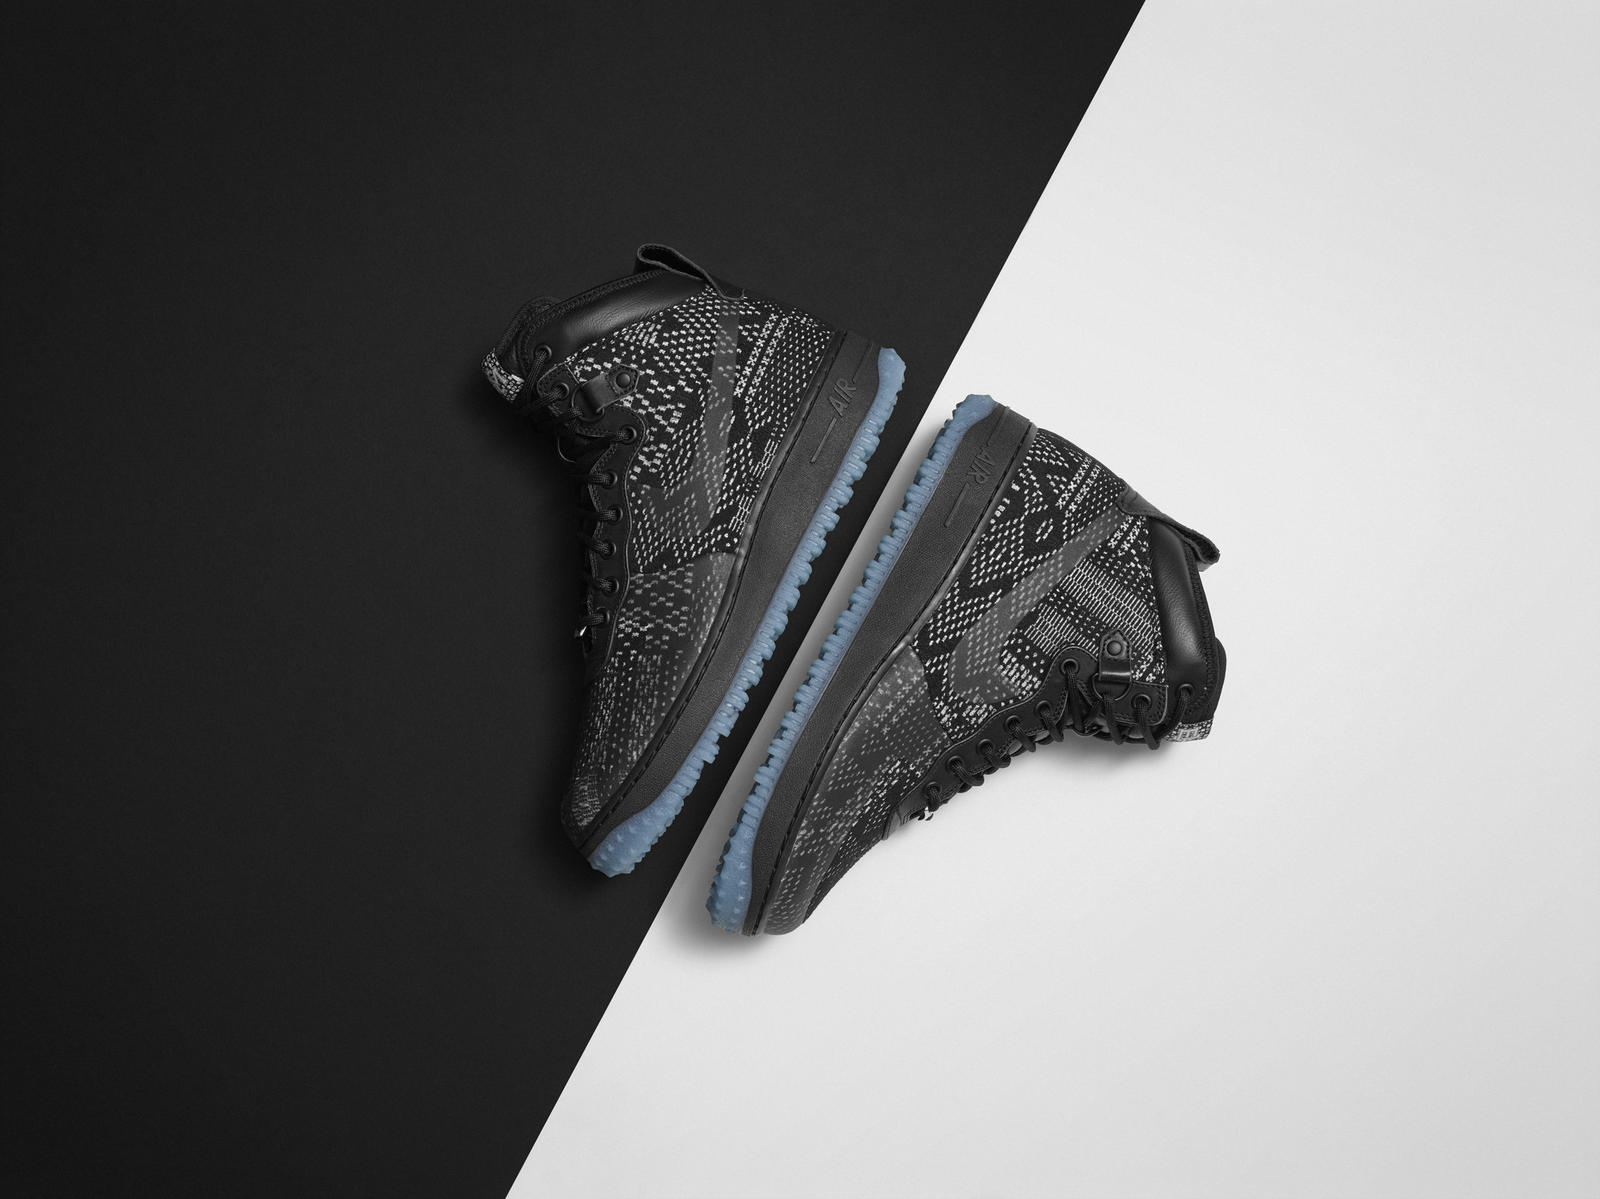 NIKE, Inc. Introduces the 2015 Black History Month